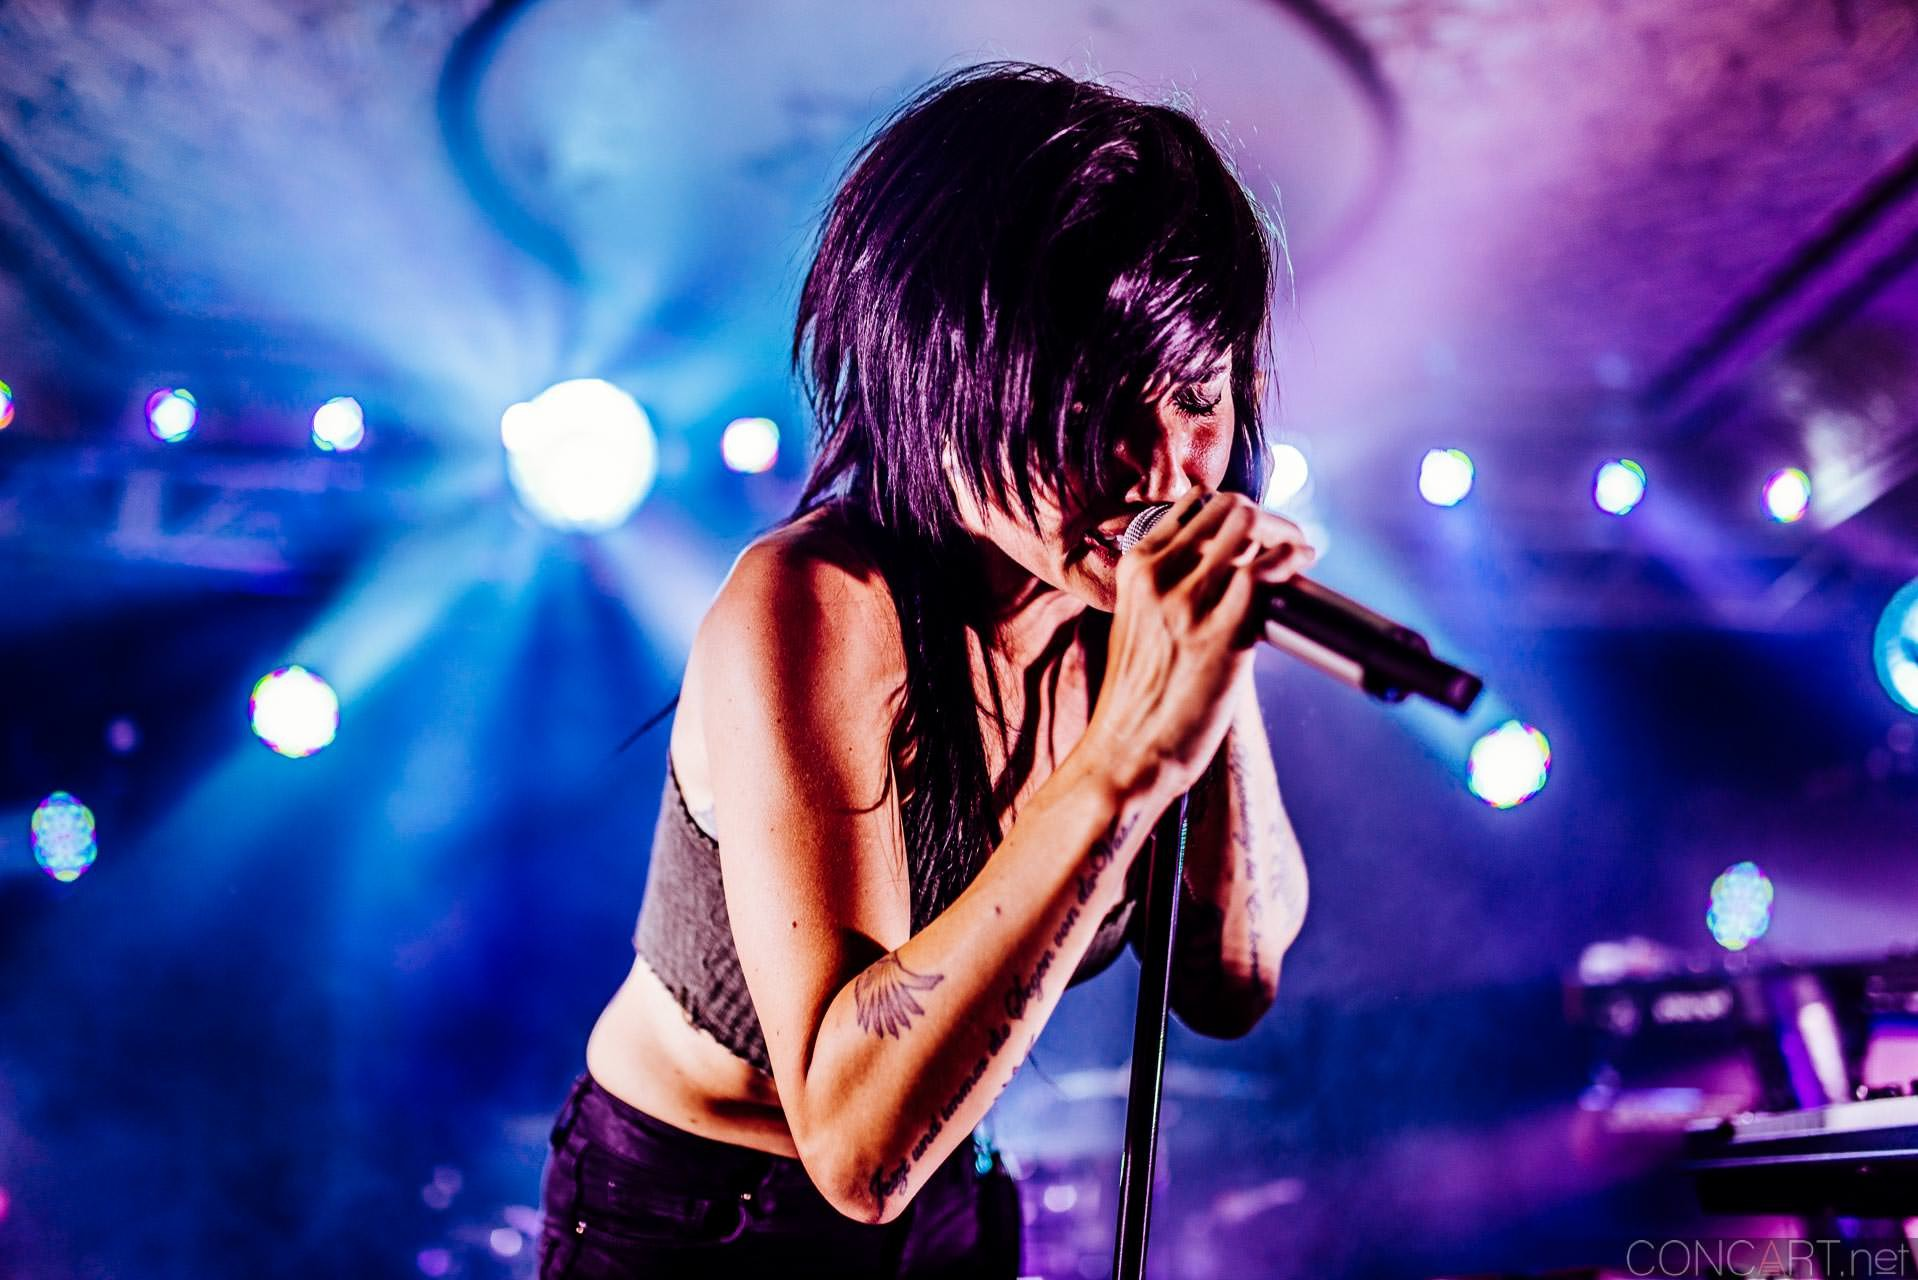 LIGHTS photo by Sean Molin 3